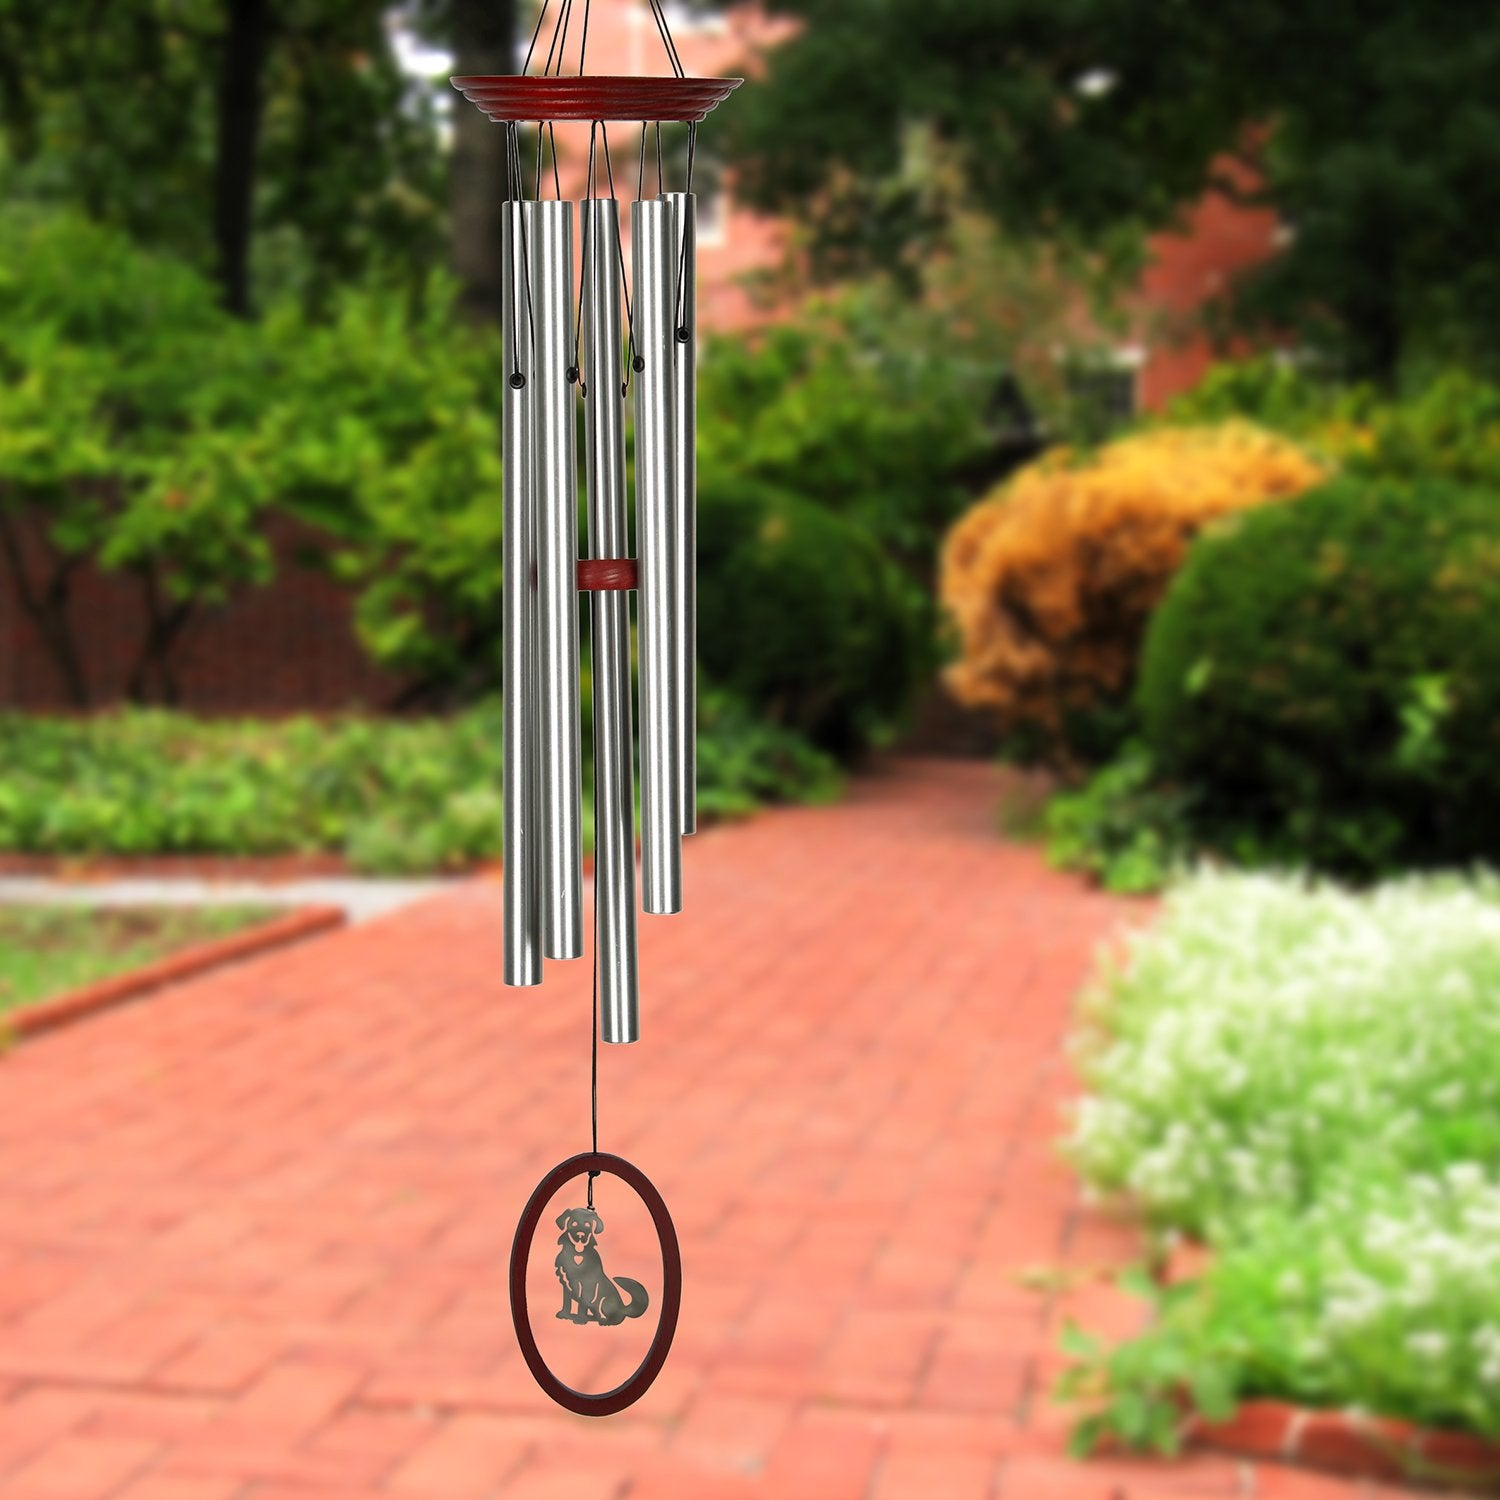 Wind Fantasy Chime - Dog lifestyle image